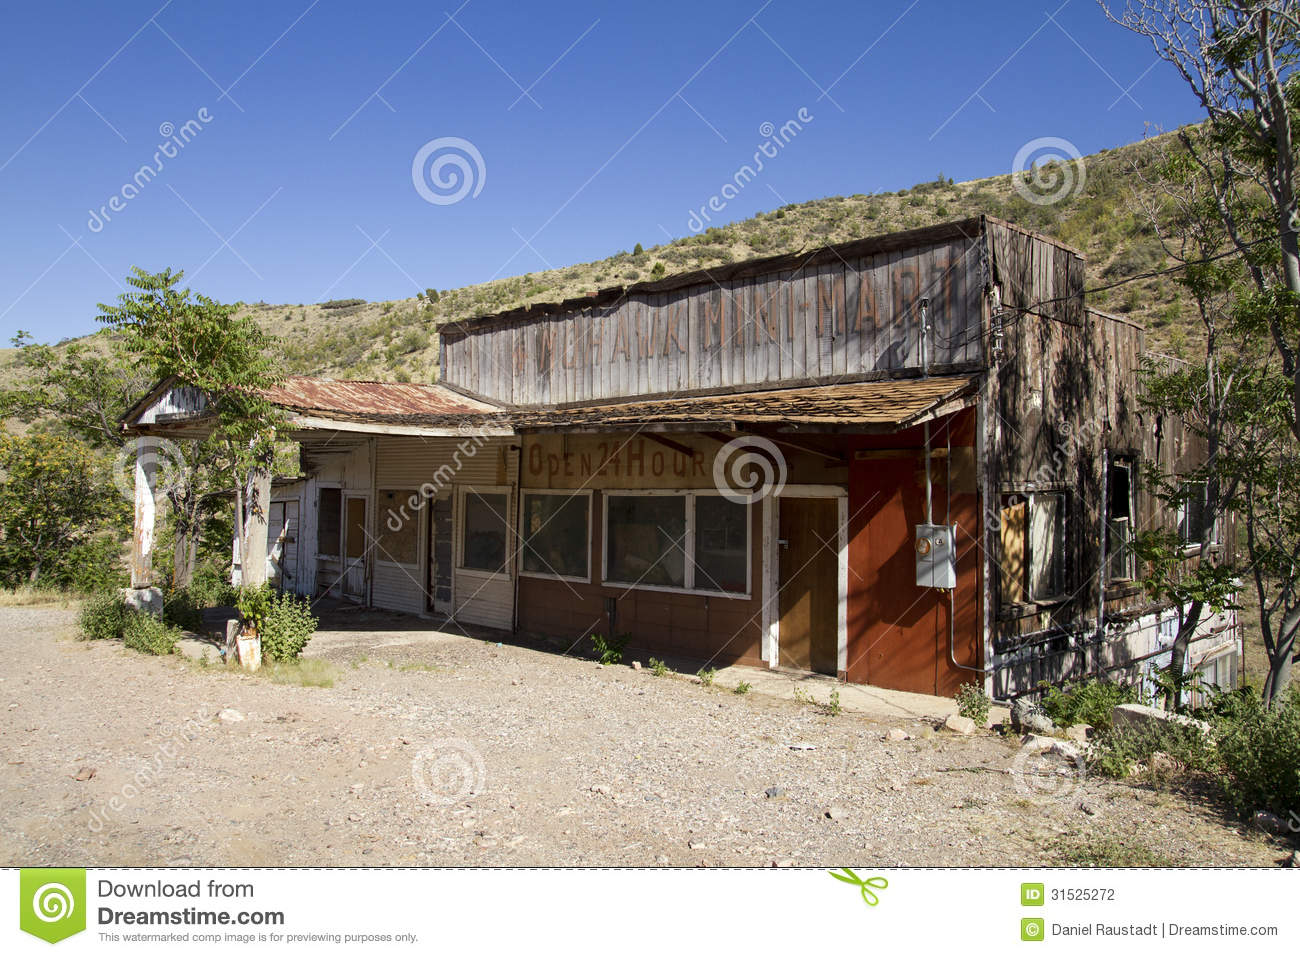 Abandoned western wooden store building stock photo for Building a house in arizona